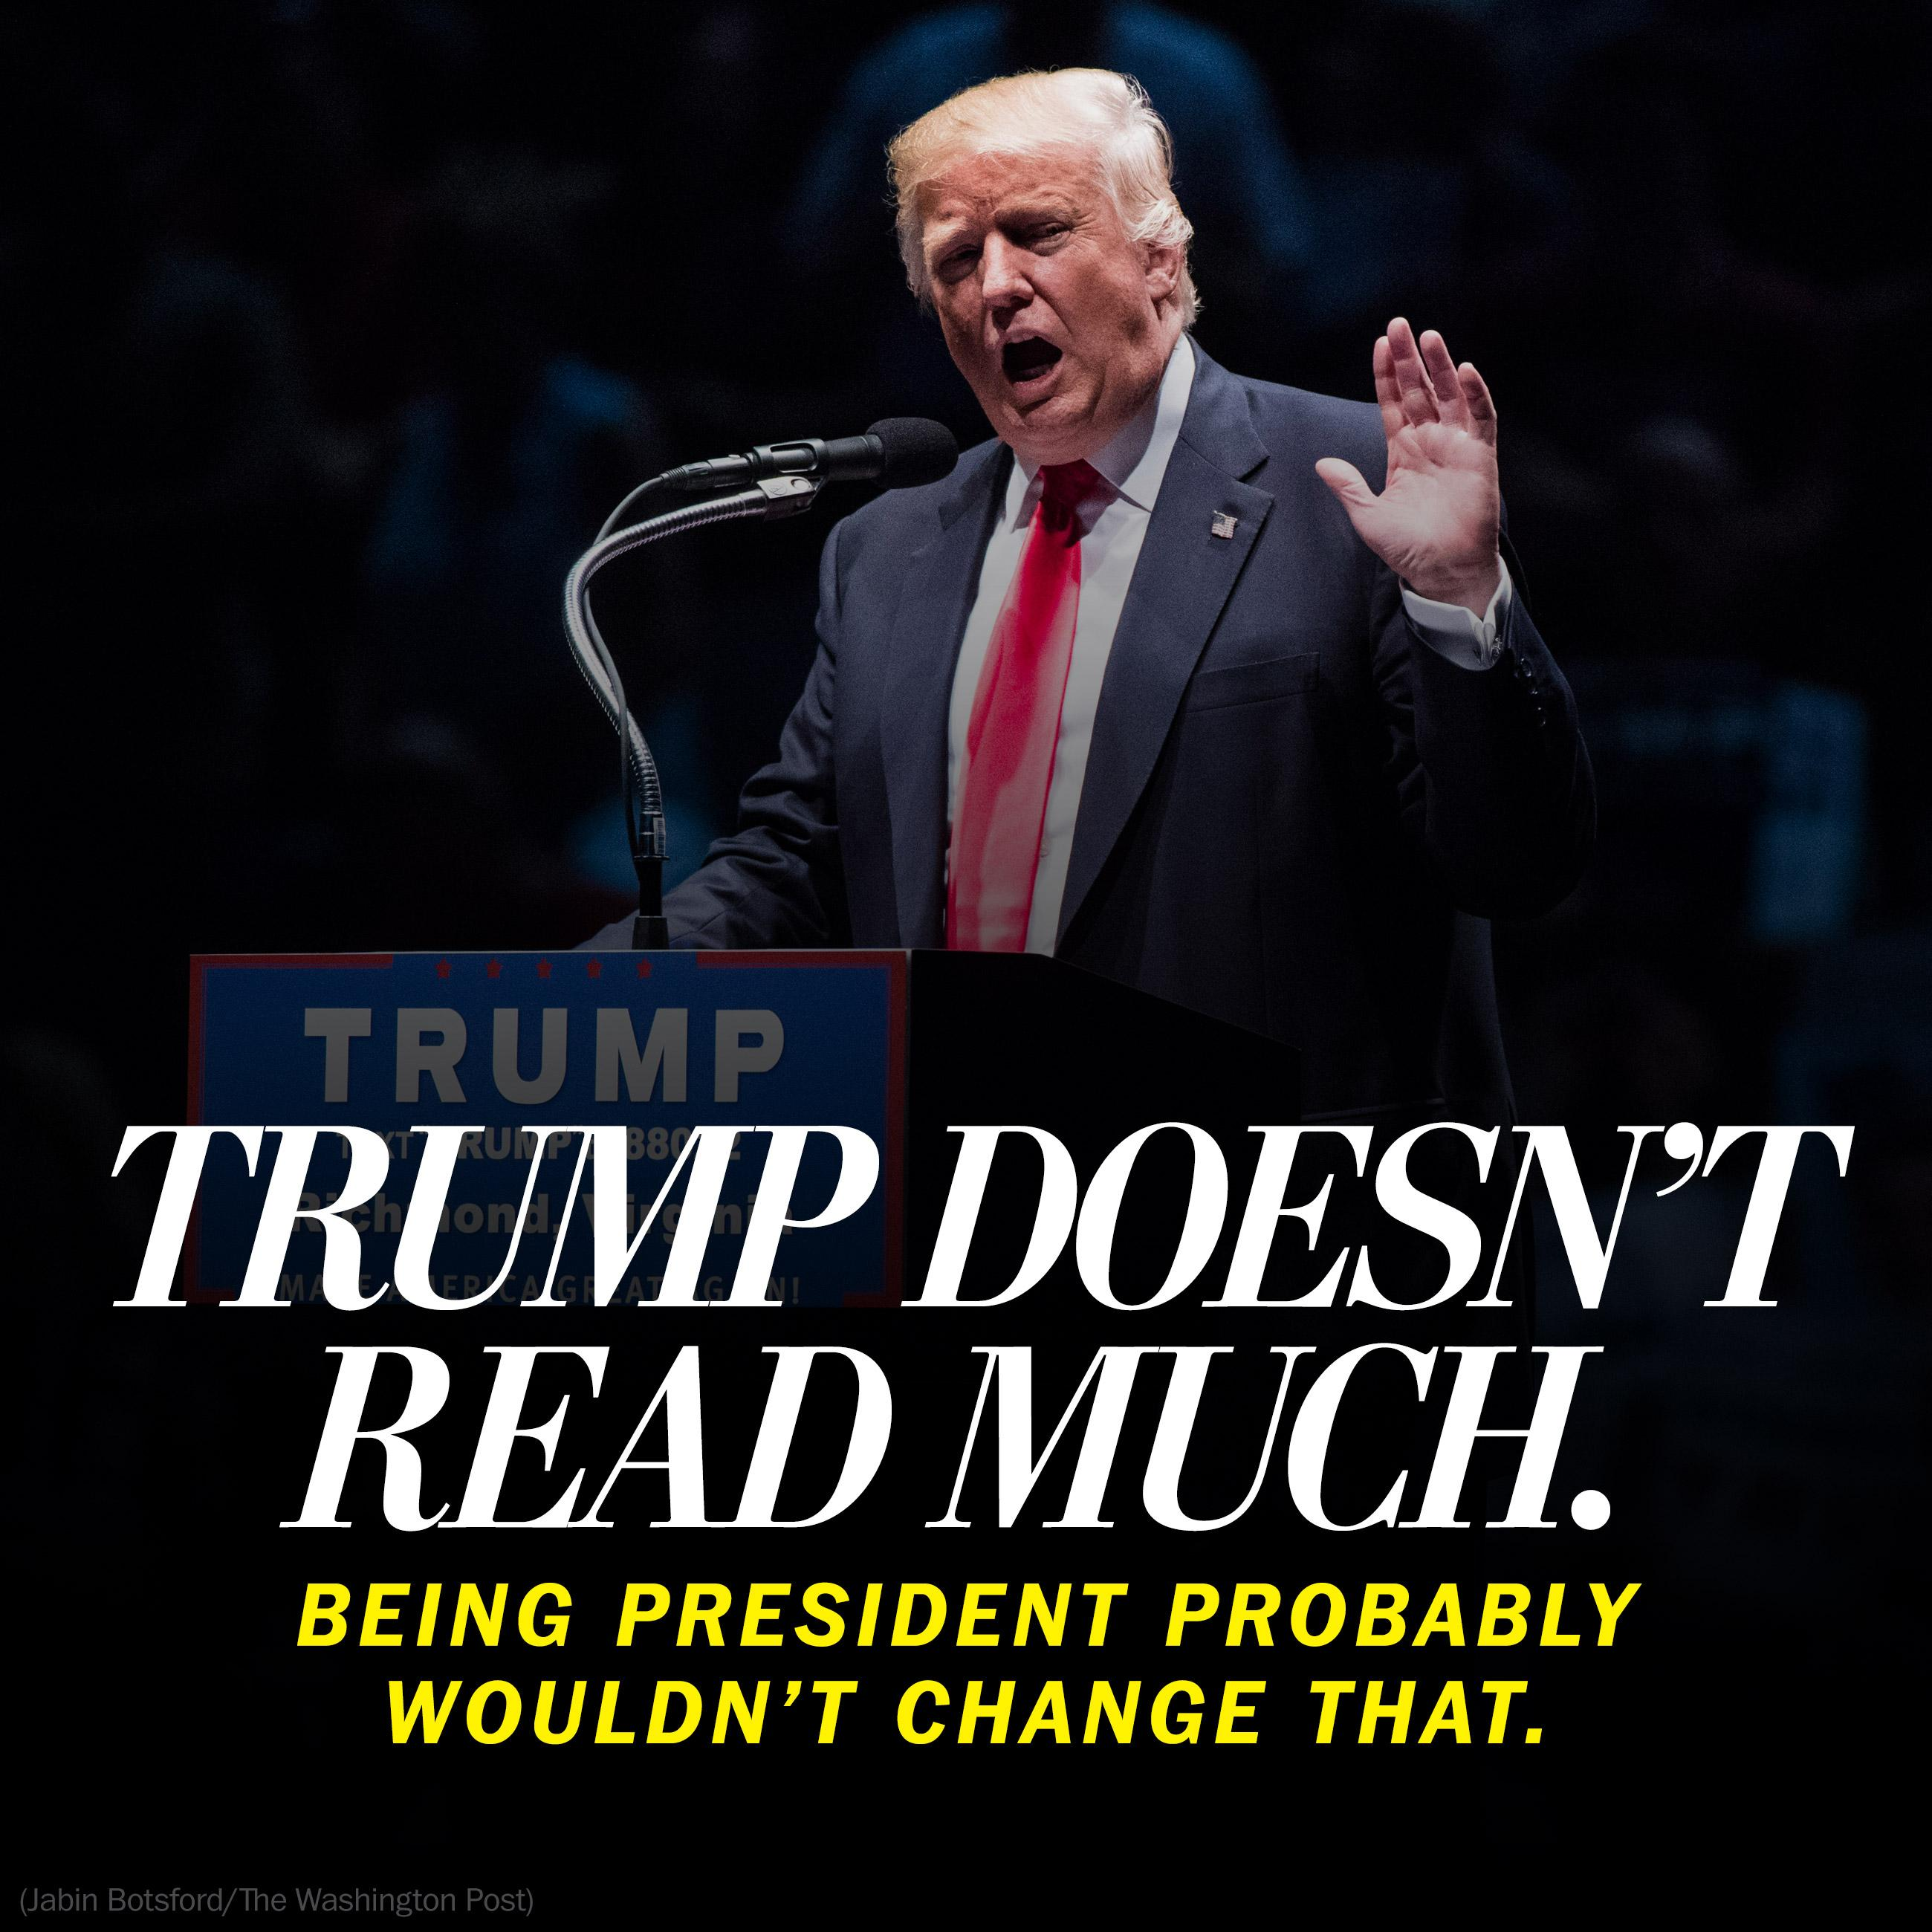 Donald Trump doesn't read much. Being president probably wouldn't change that.